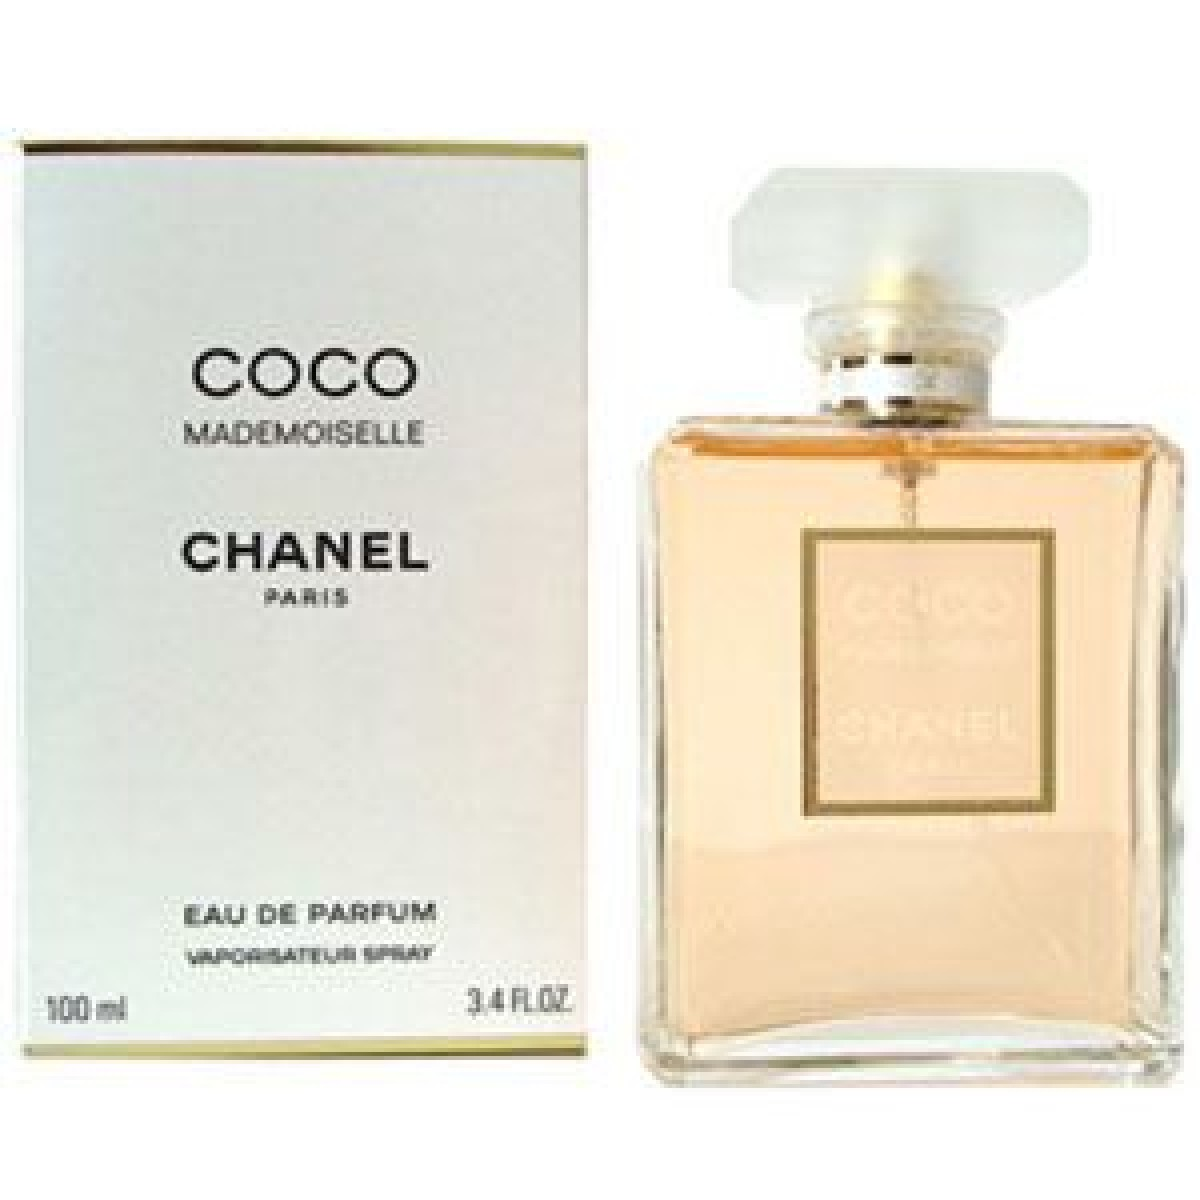 Chanel Coco Mademoiselle Eau De Parfum Price In Pakistan Buy